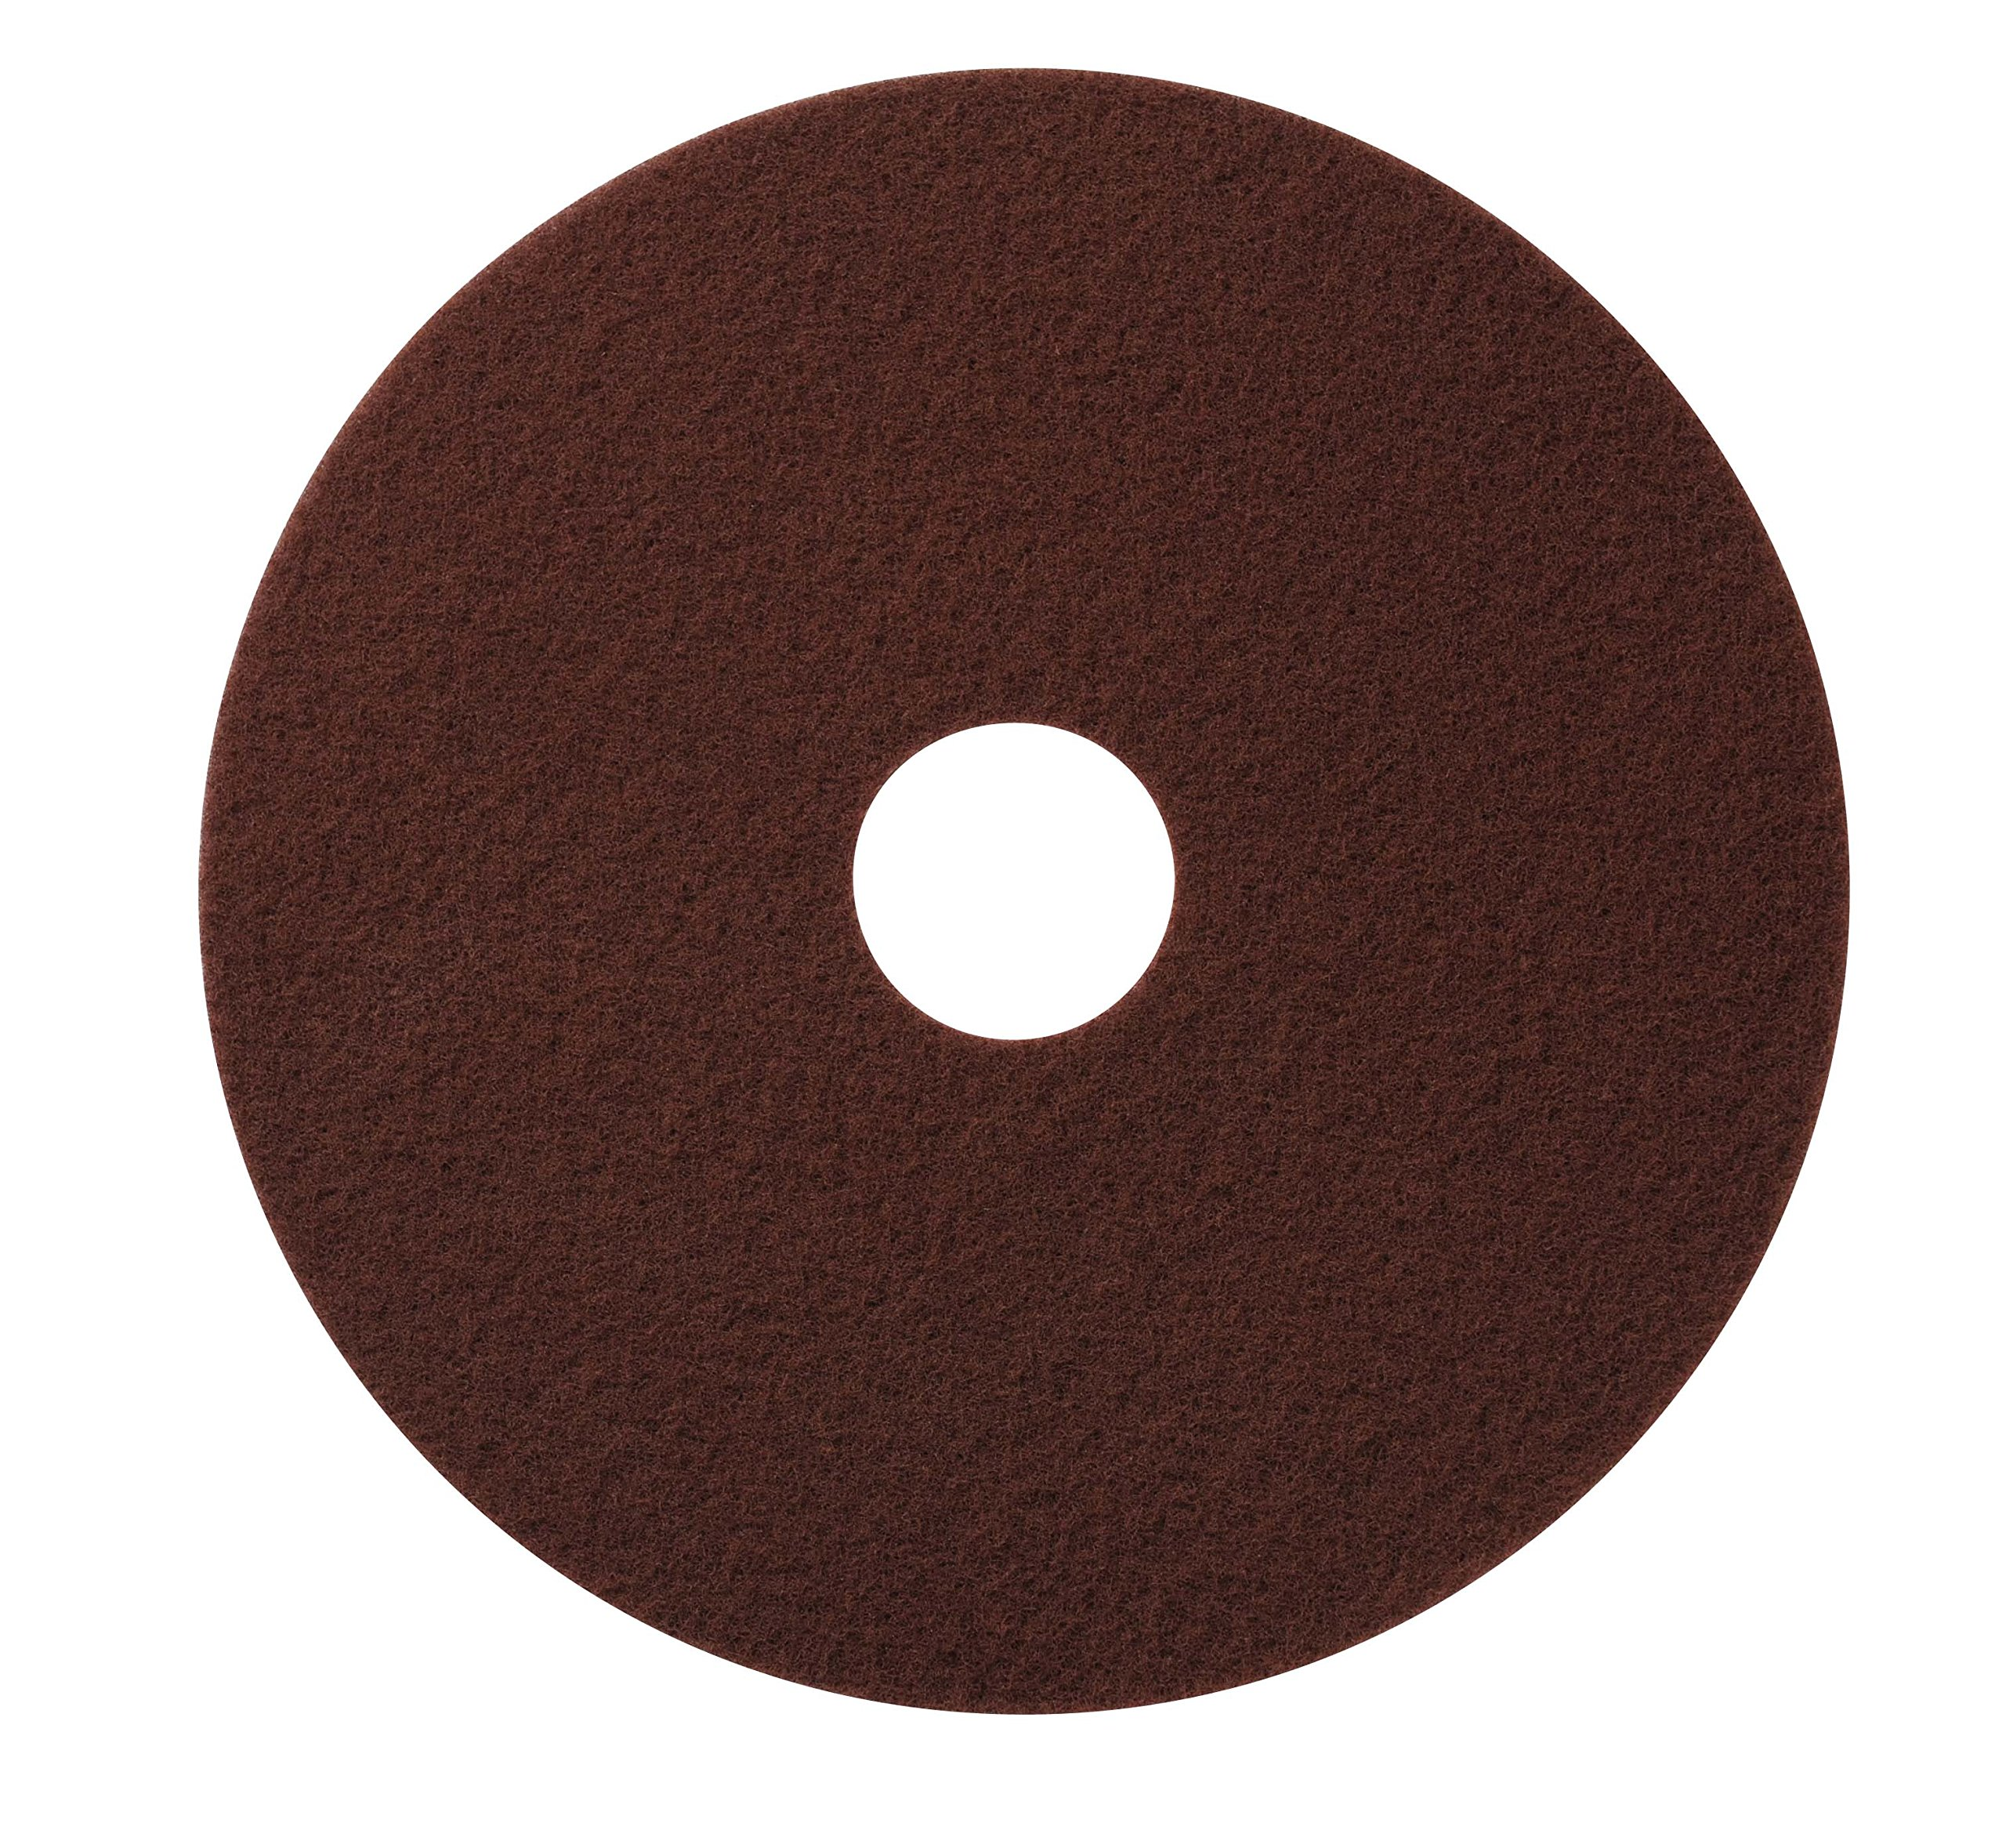 Glit / Microtron 420717 Chemical Free Stripping or Deep Scrub Pad, 17'', Maroon (Pack of 10)